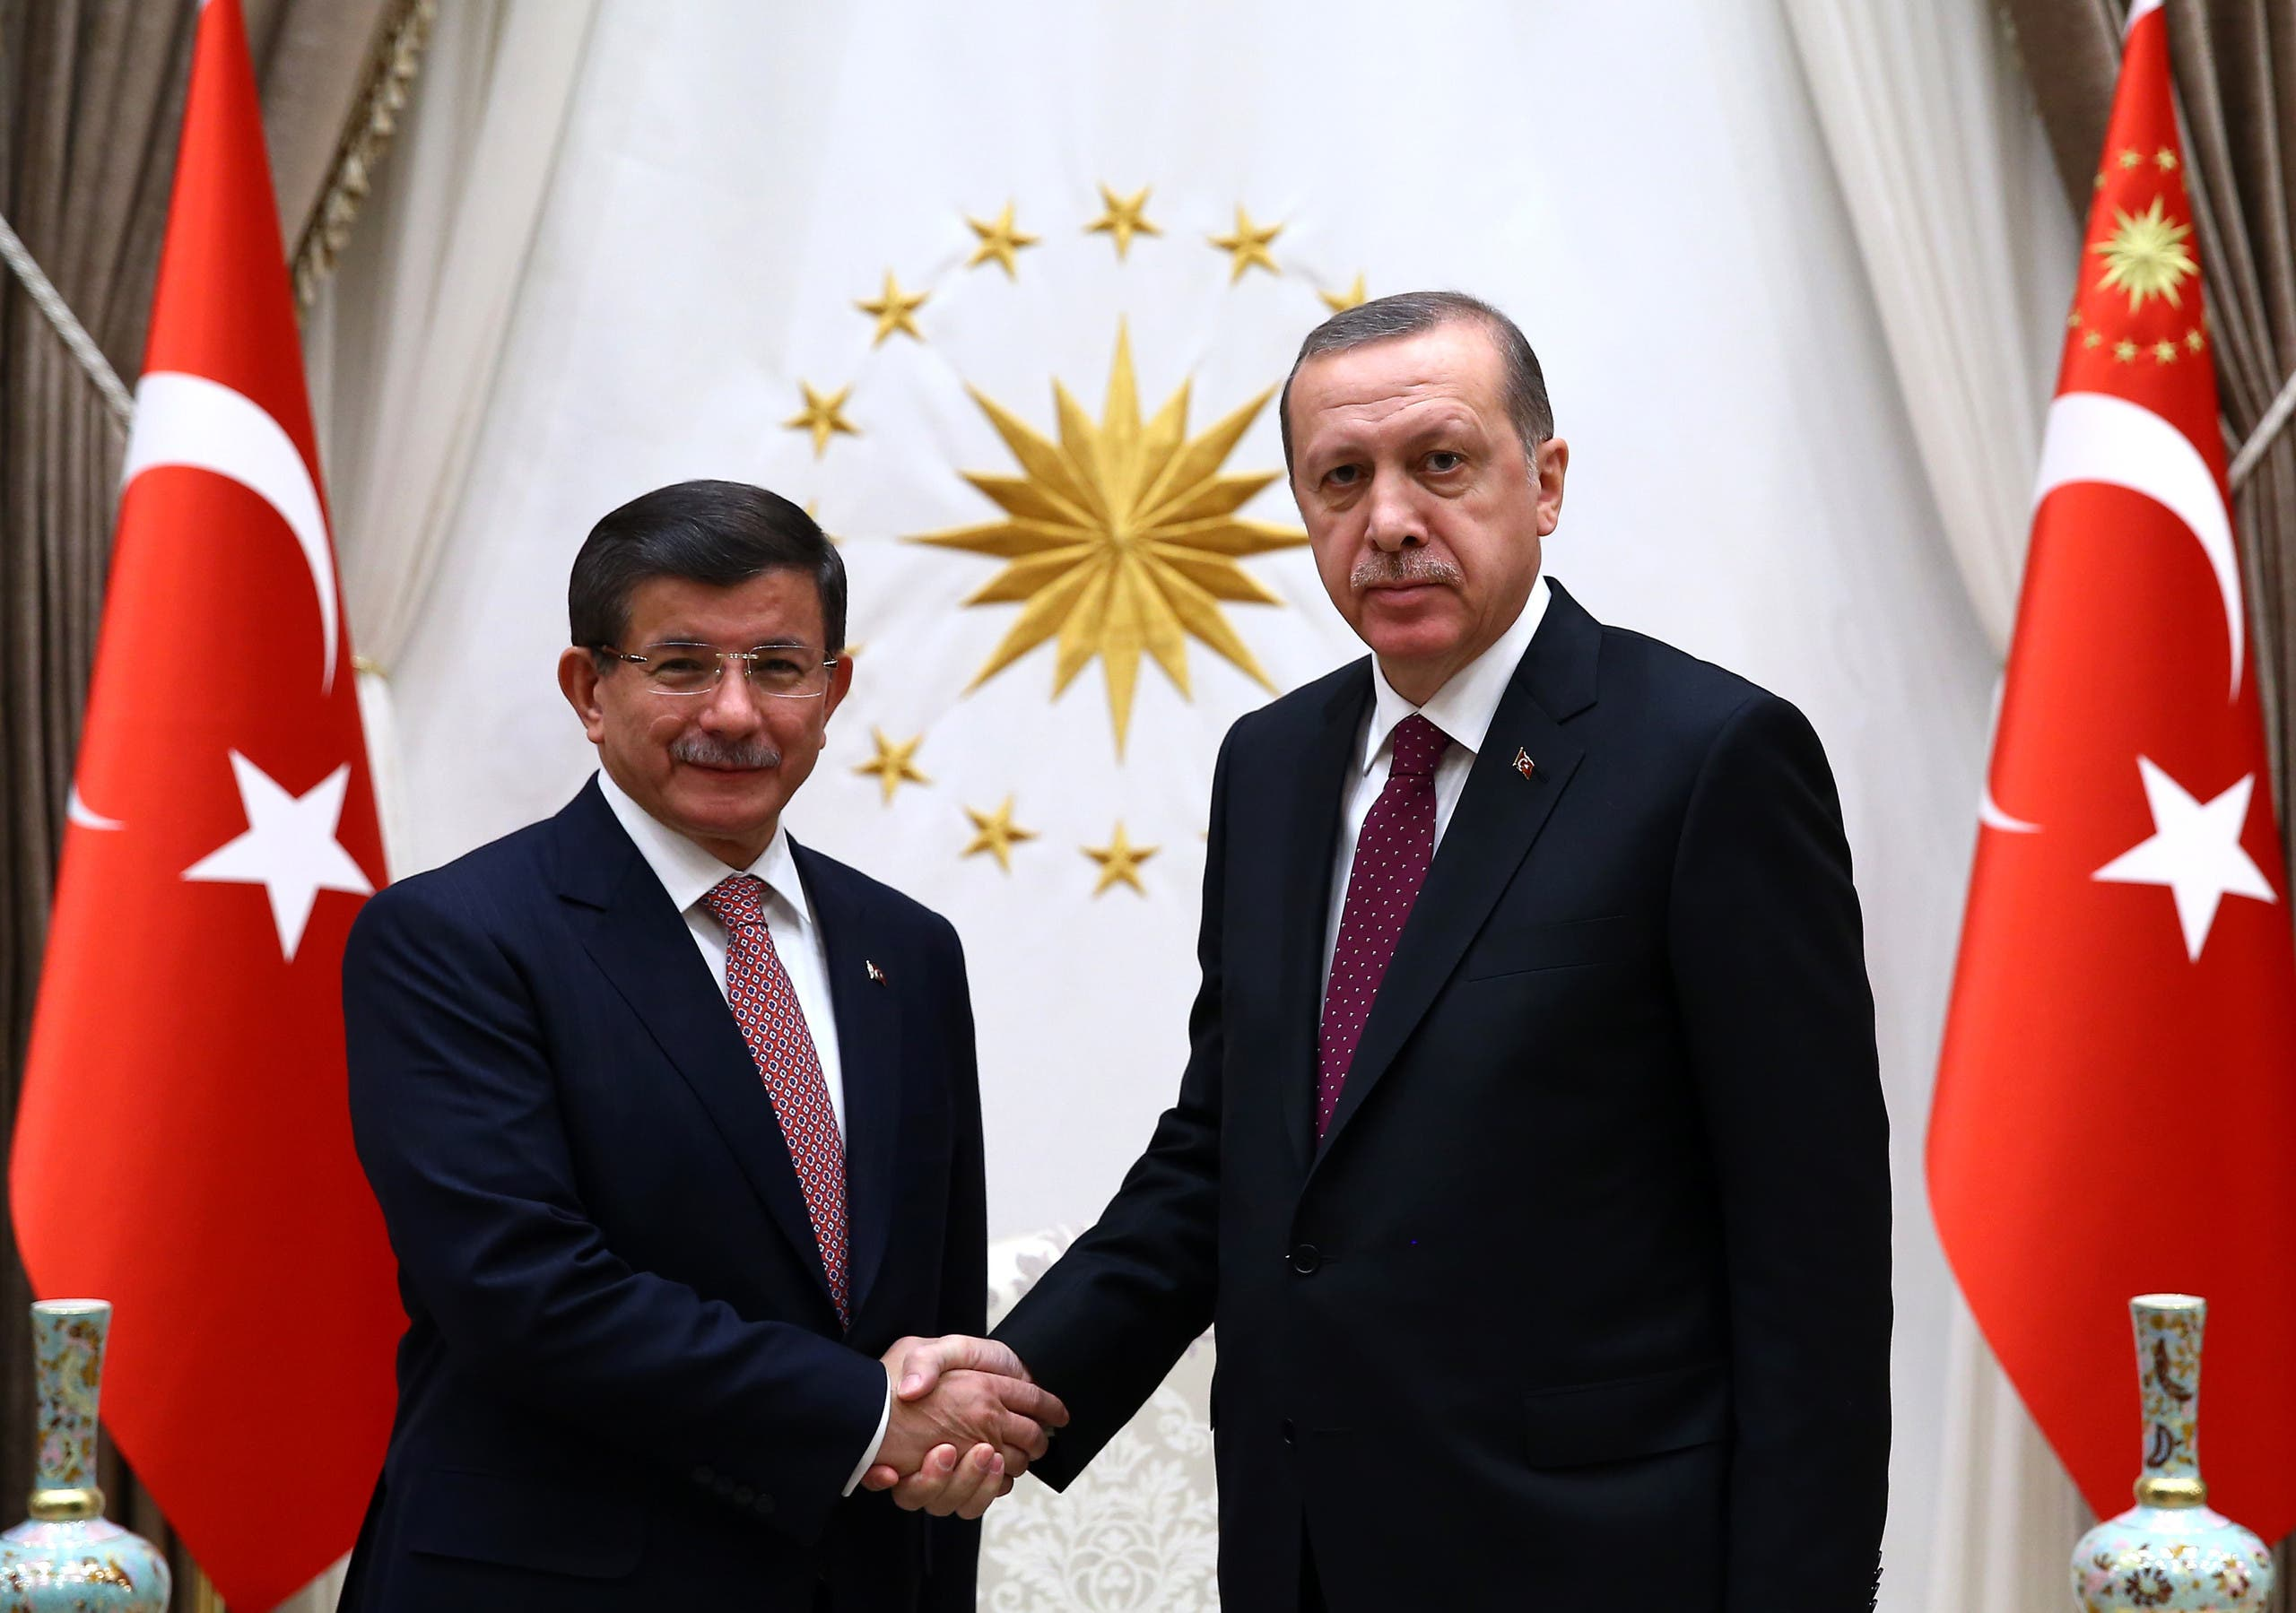 Turkey's Prime Minister Ahmet Davutoglu left, and President Recep Tayyip Erdogan shake hands before a meeting in Ankara, Turkey, Tuesday, Nov. 17, 2015. (AP)